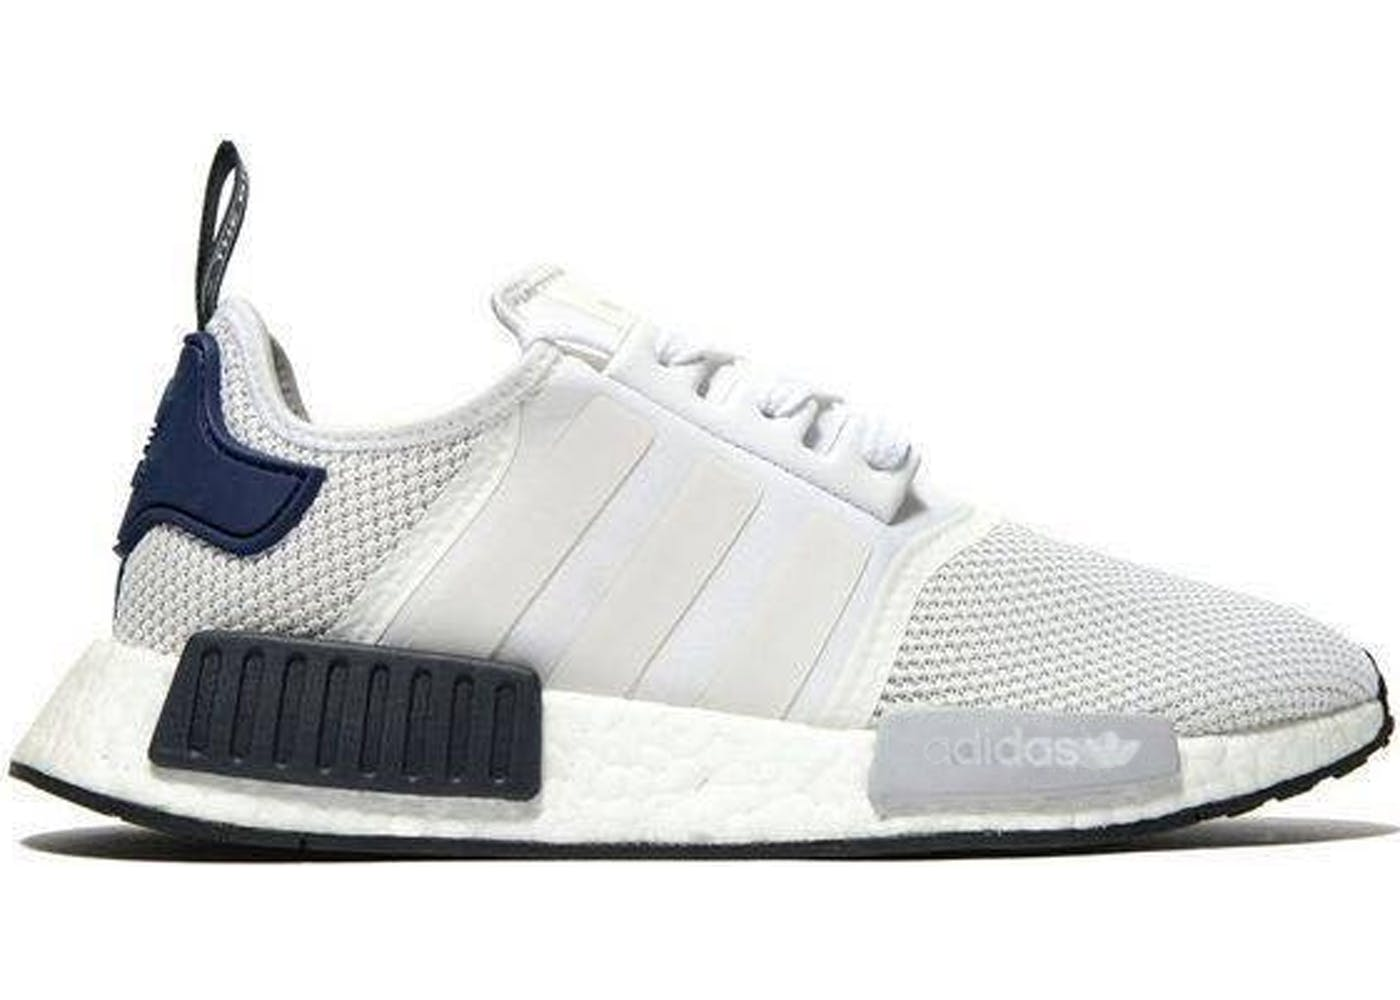 "#sneakers #news adidas Originals Drop the NMD R1 ""White Noise"